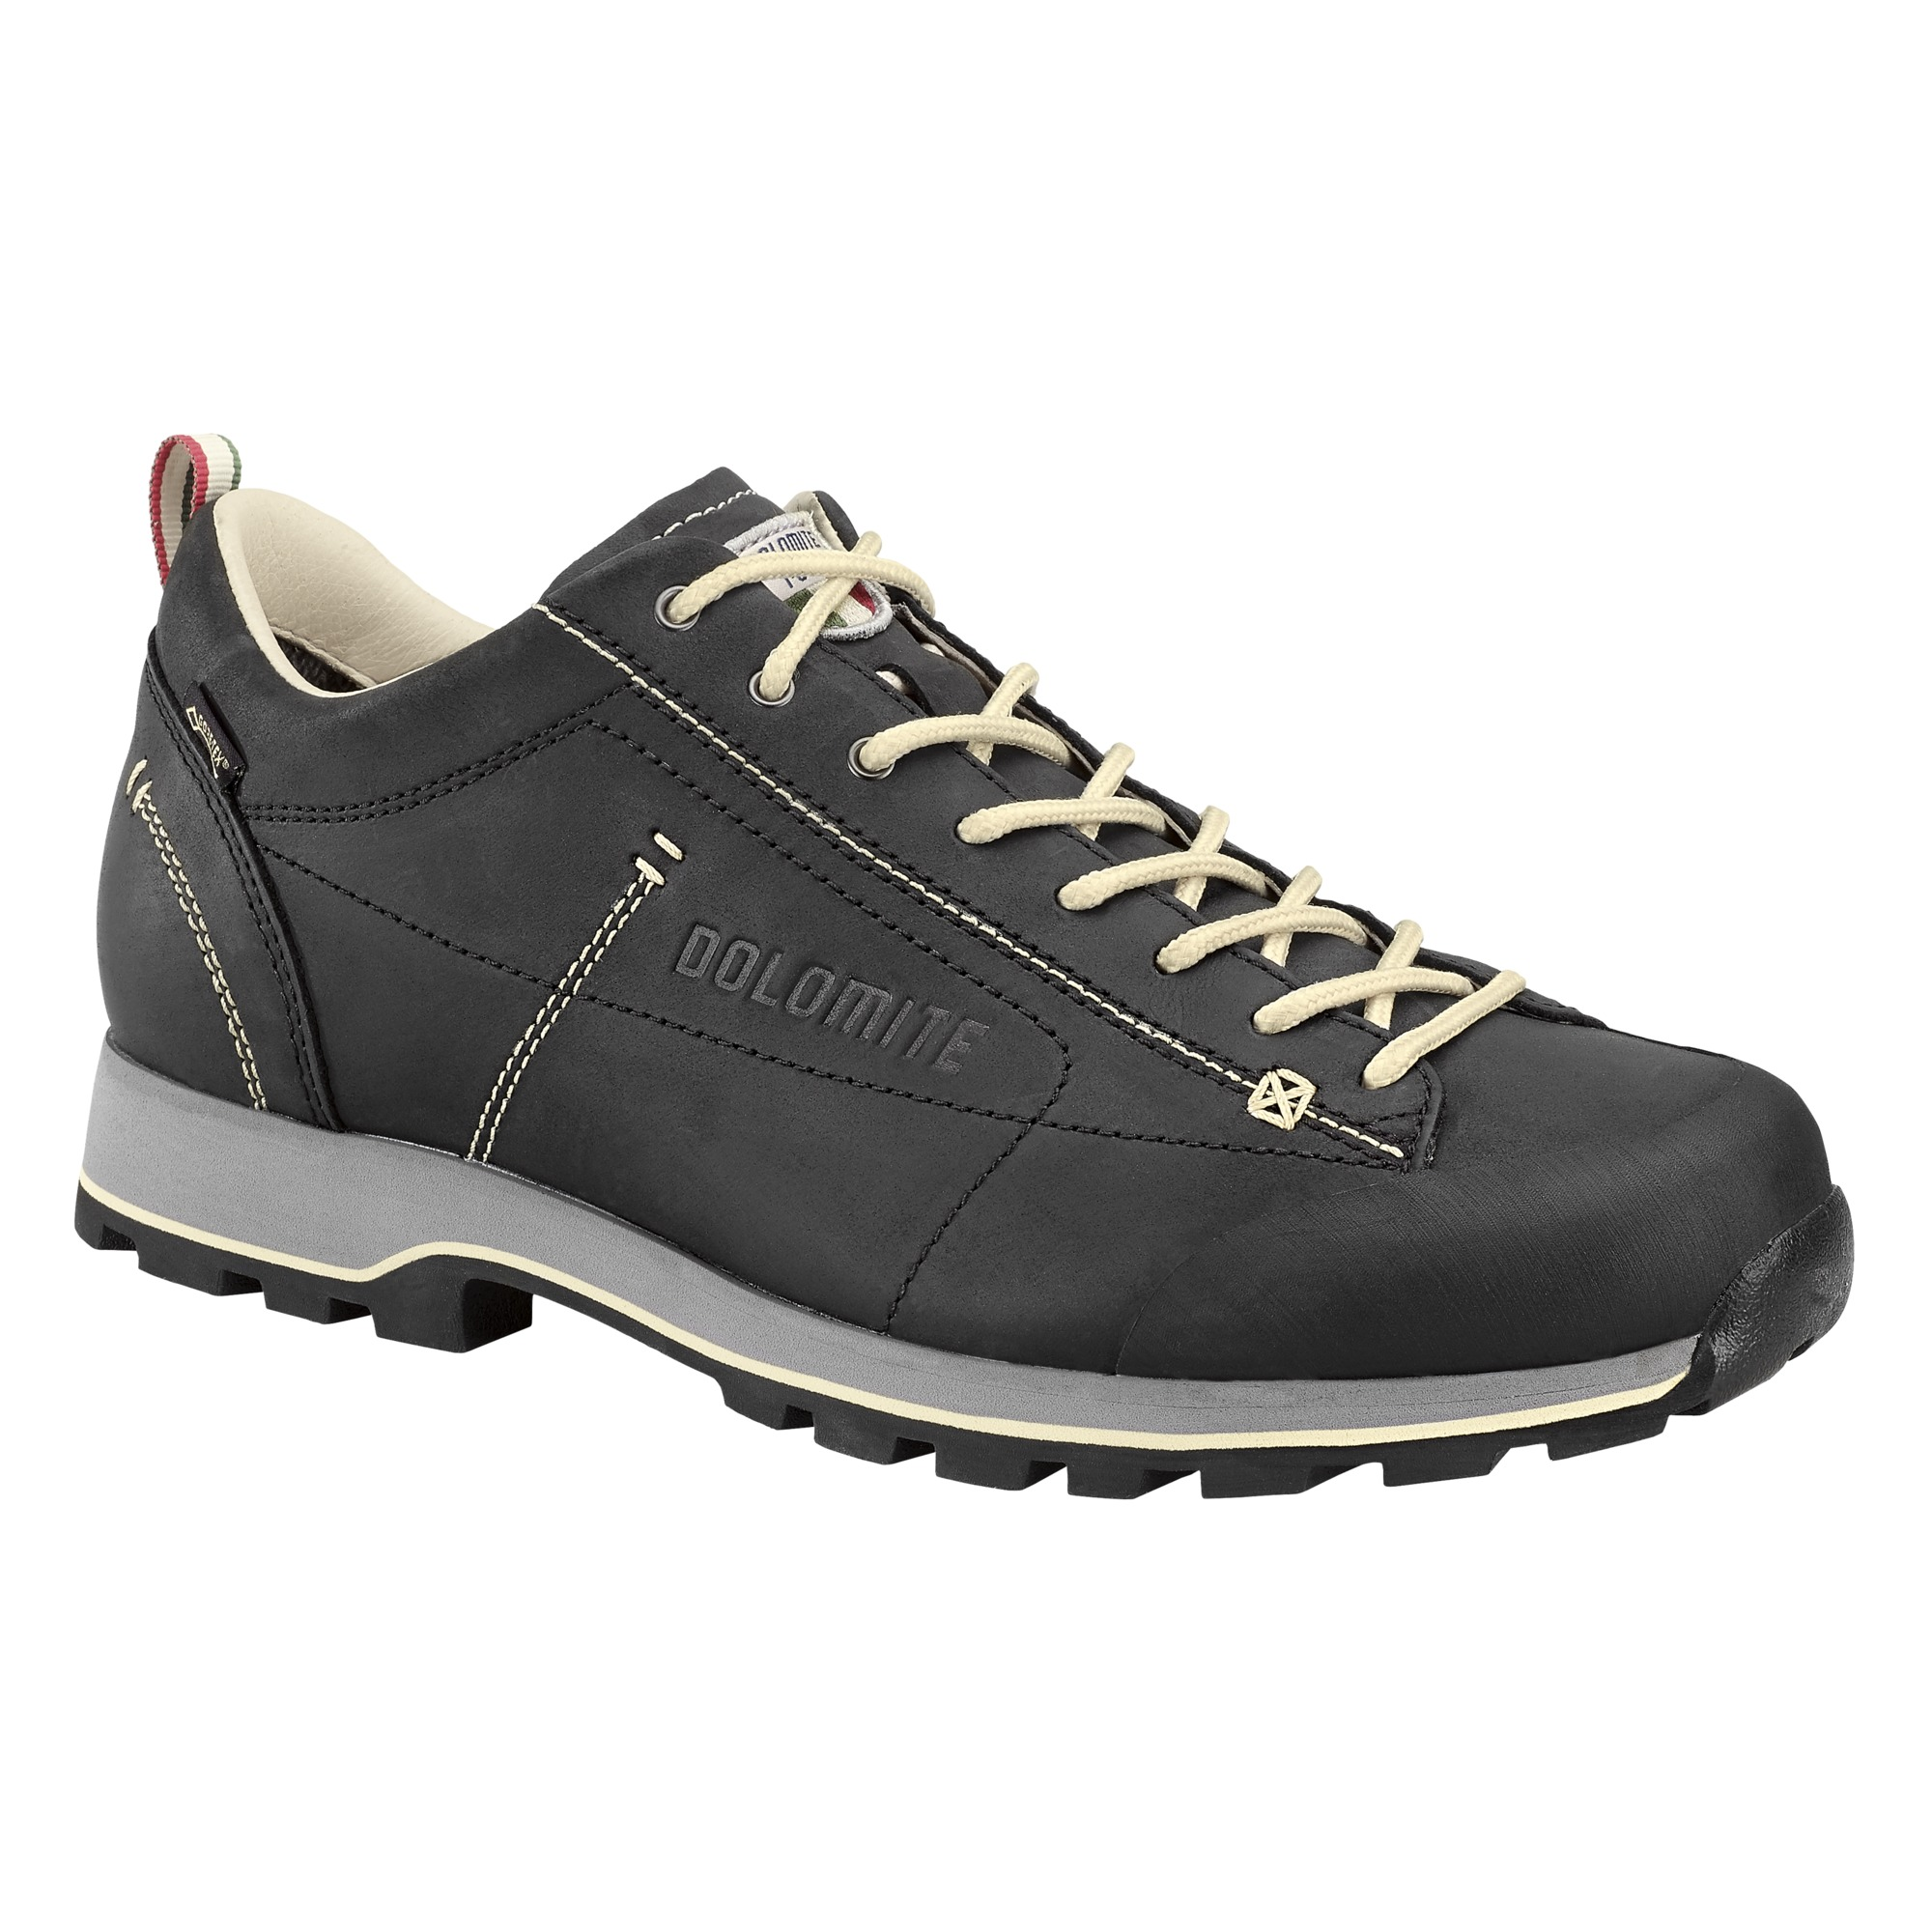 new high most popular classic styles DOLOMITE 54 Low Fg GTX Shoe